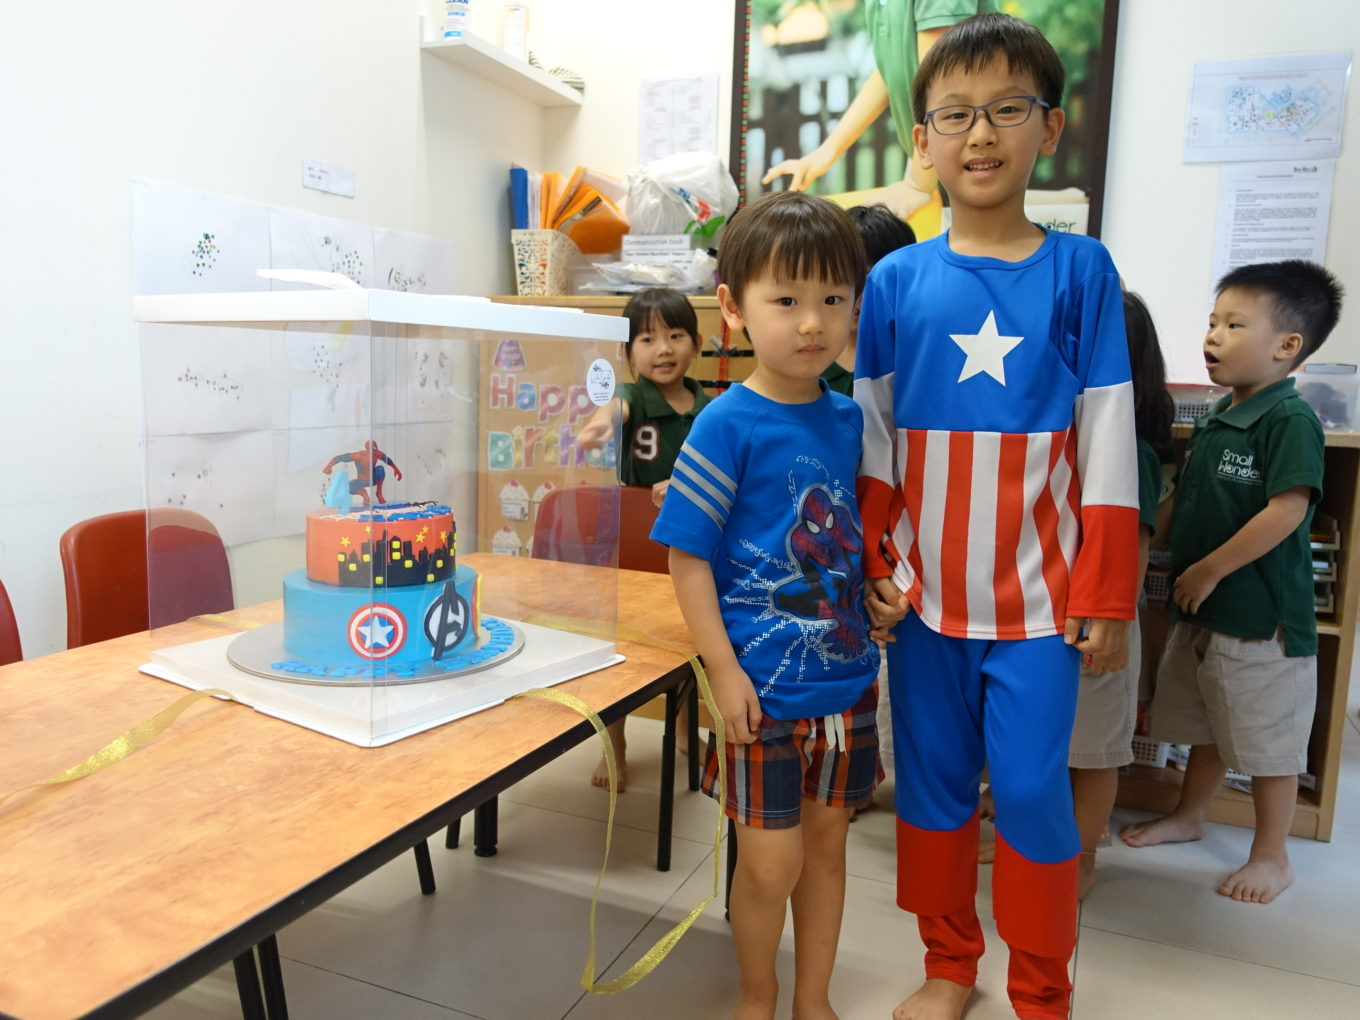 Cake From White Spatula For Rayes 4th Year Old Birthday Celebration Dr Kevin Men Sandals 97201 Brown Cokelat Muda 41 Kaiser Went Along With Me As Well To Celebrate Rayess He Too Was Super Thrilled The Is A Big Fan Of Avengers